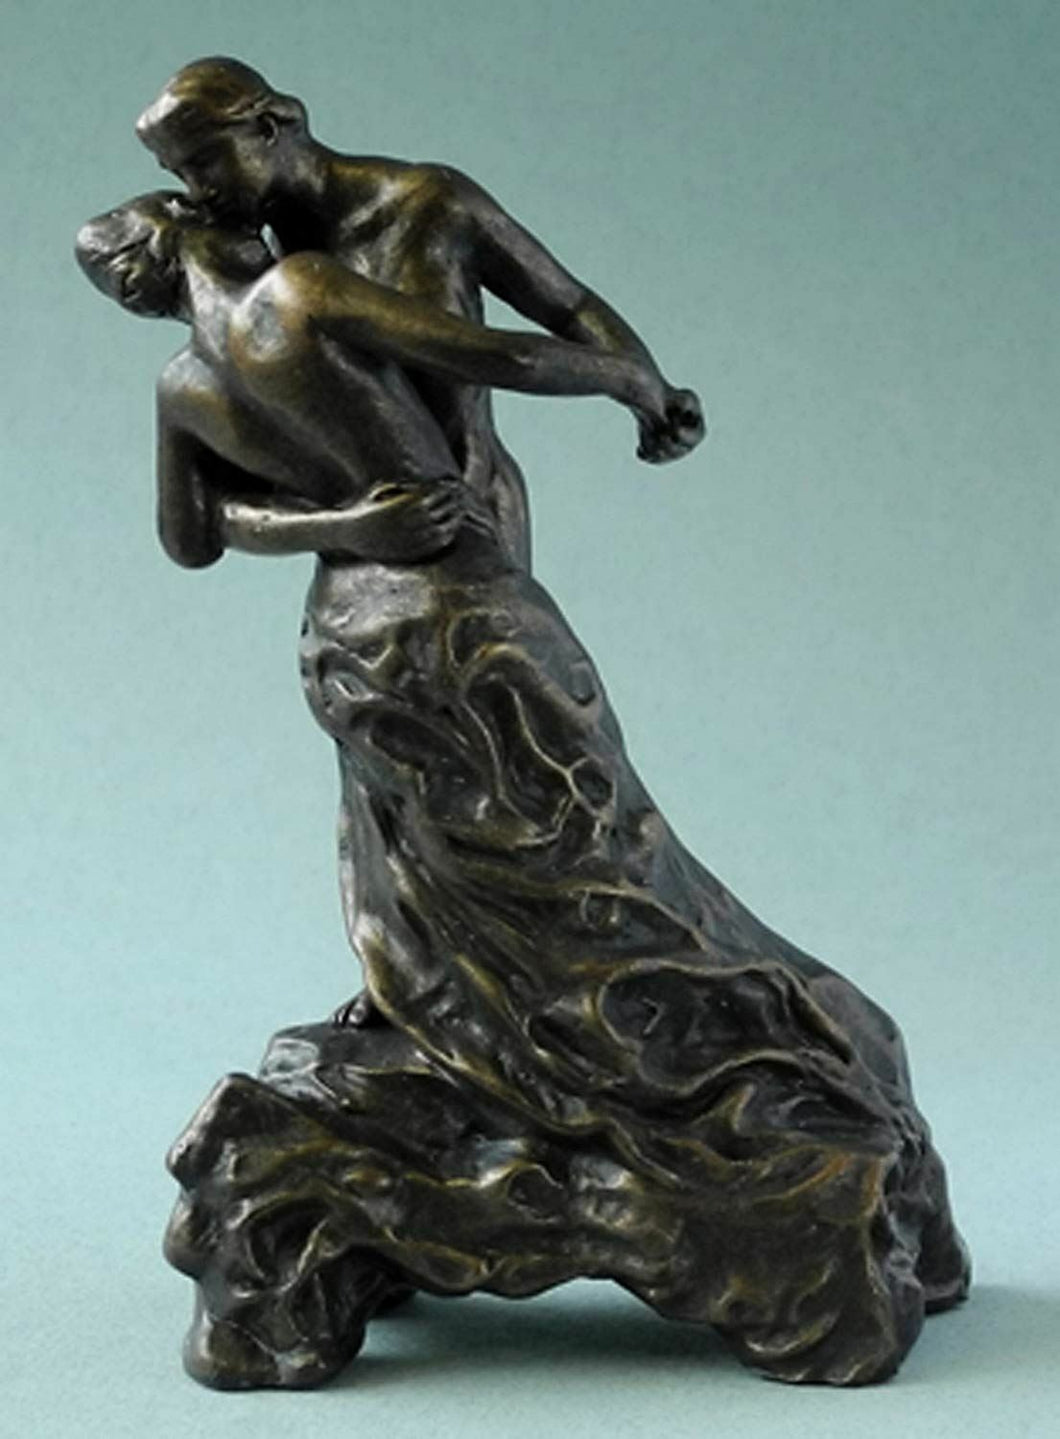 Museum Miniature Reproduction Sculpture The Waltz Camille Claudel Statue